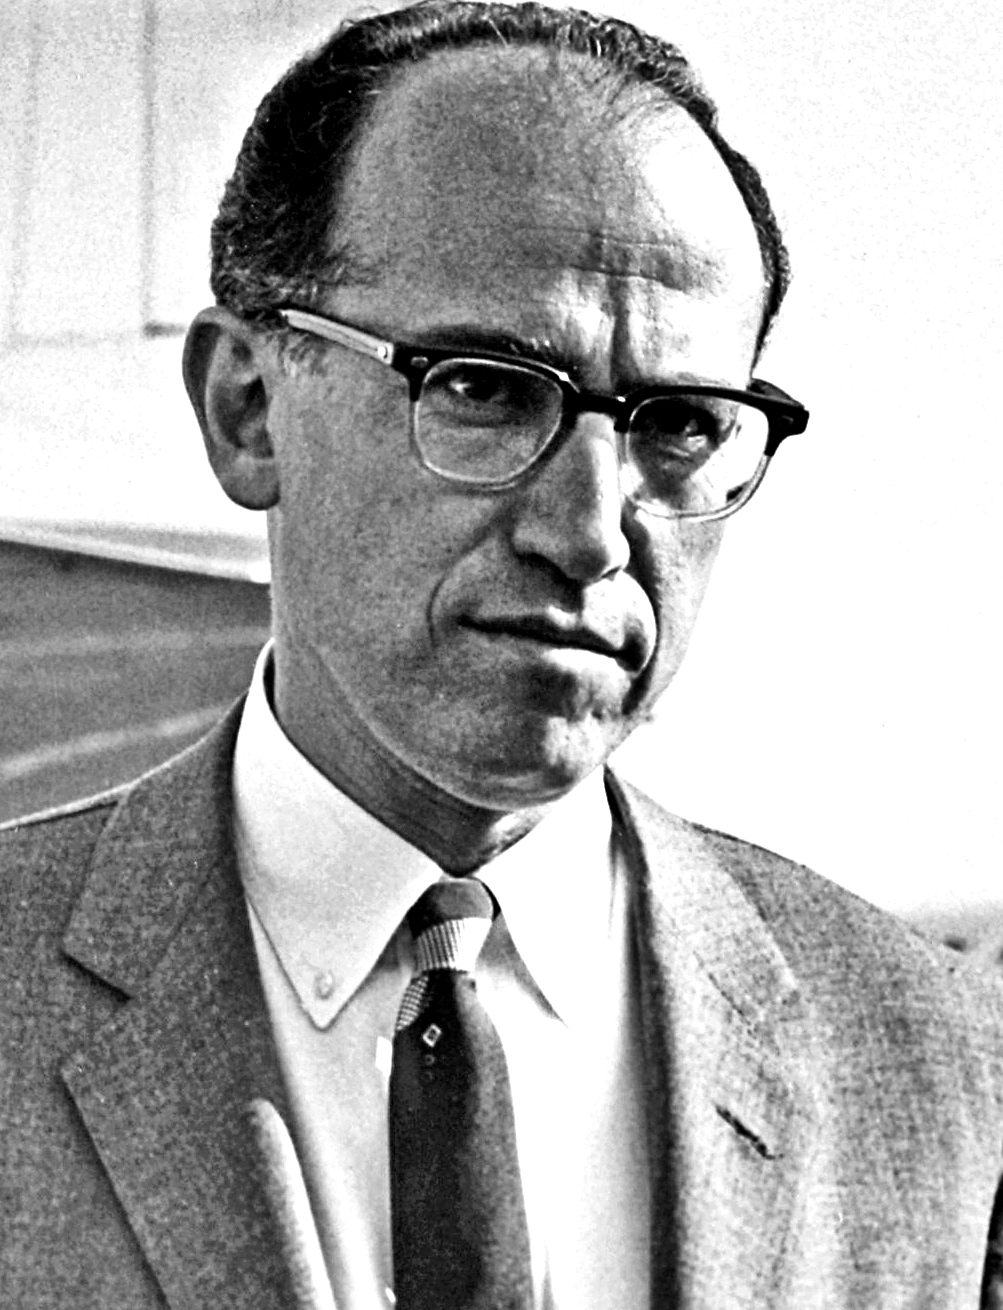 Dr Jones Edward Salk, creator of Salk polio vaccine, at Copenhagen Airport. During four days stay in Kastrup airport CPH, Copenhagen Dr. Salk paid several visits to the Serum Institute, which was first one outside USA which created a polio vaccine. Dr. Salk also addressed the local Biological Society, 1959-05-28.